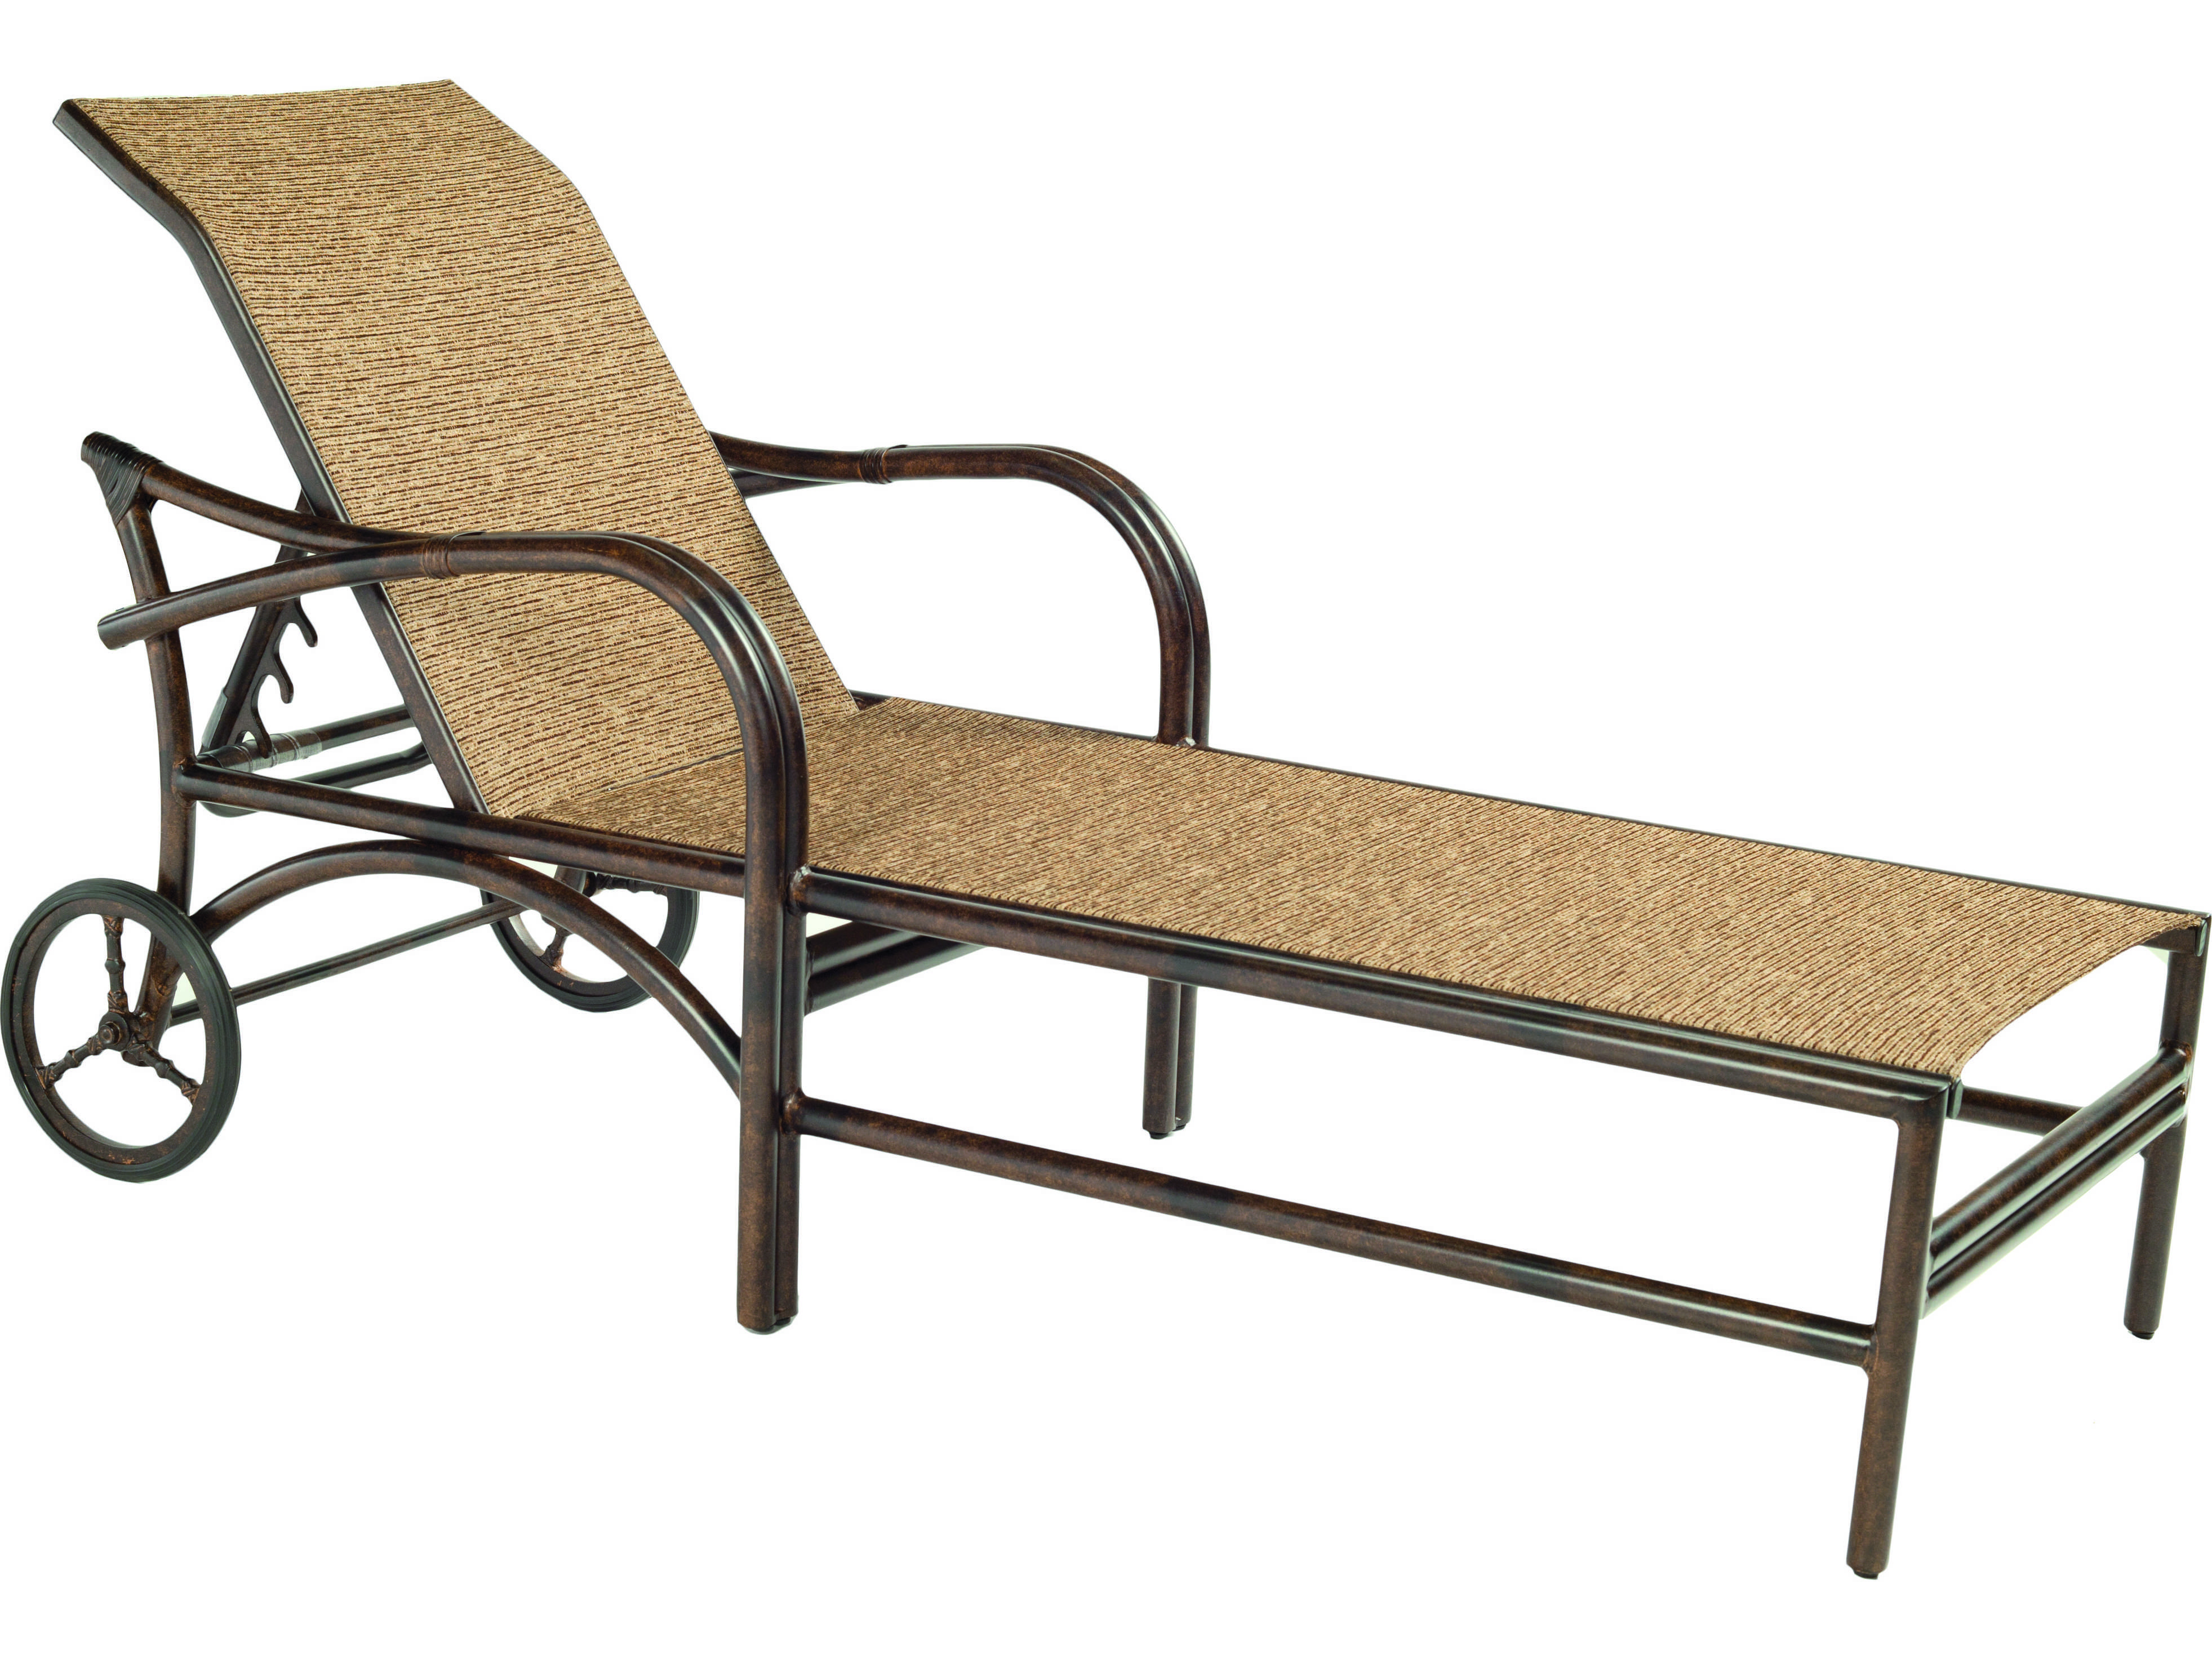 Castelle sundance sling cast aluminum adjustable chaise for Cast aluminum chaise lounge